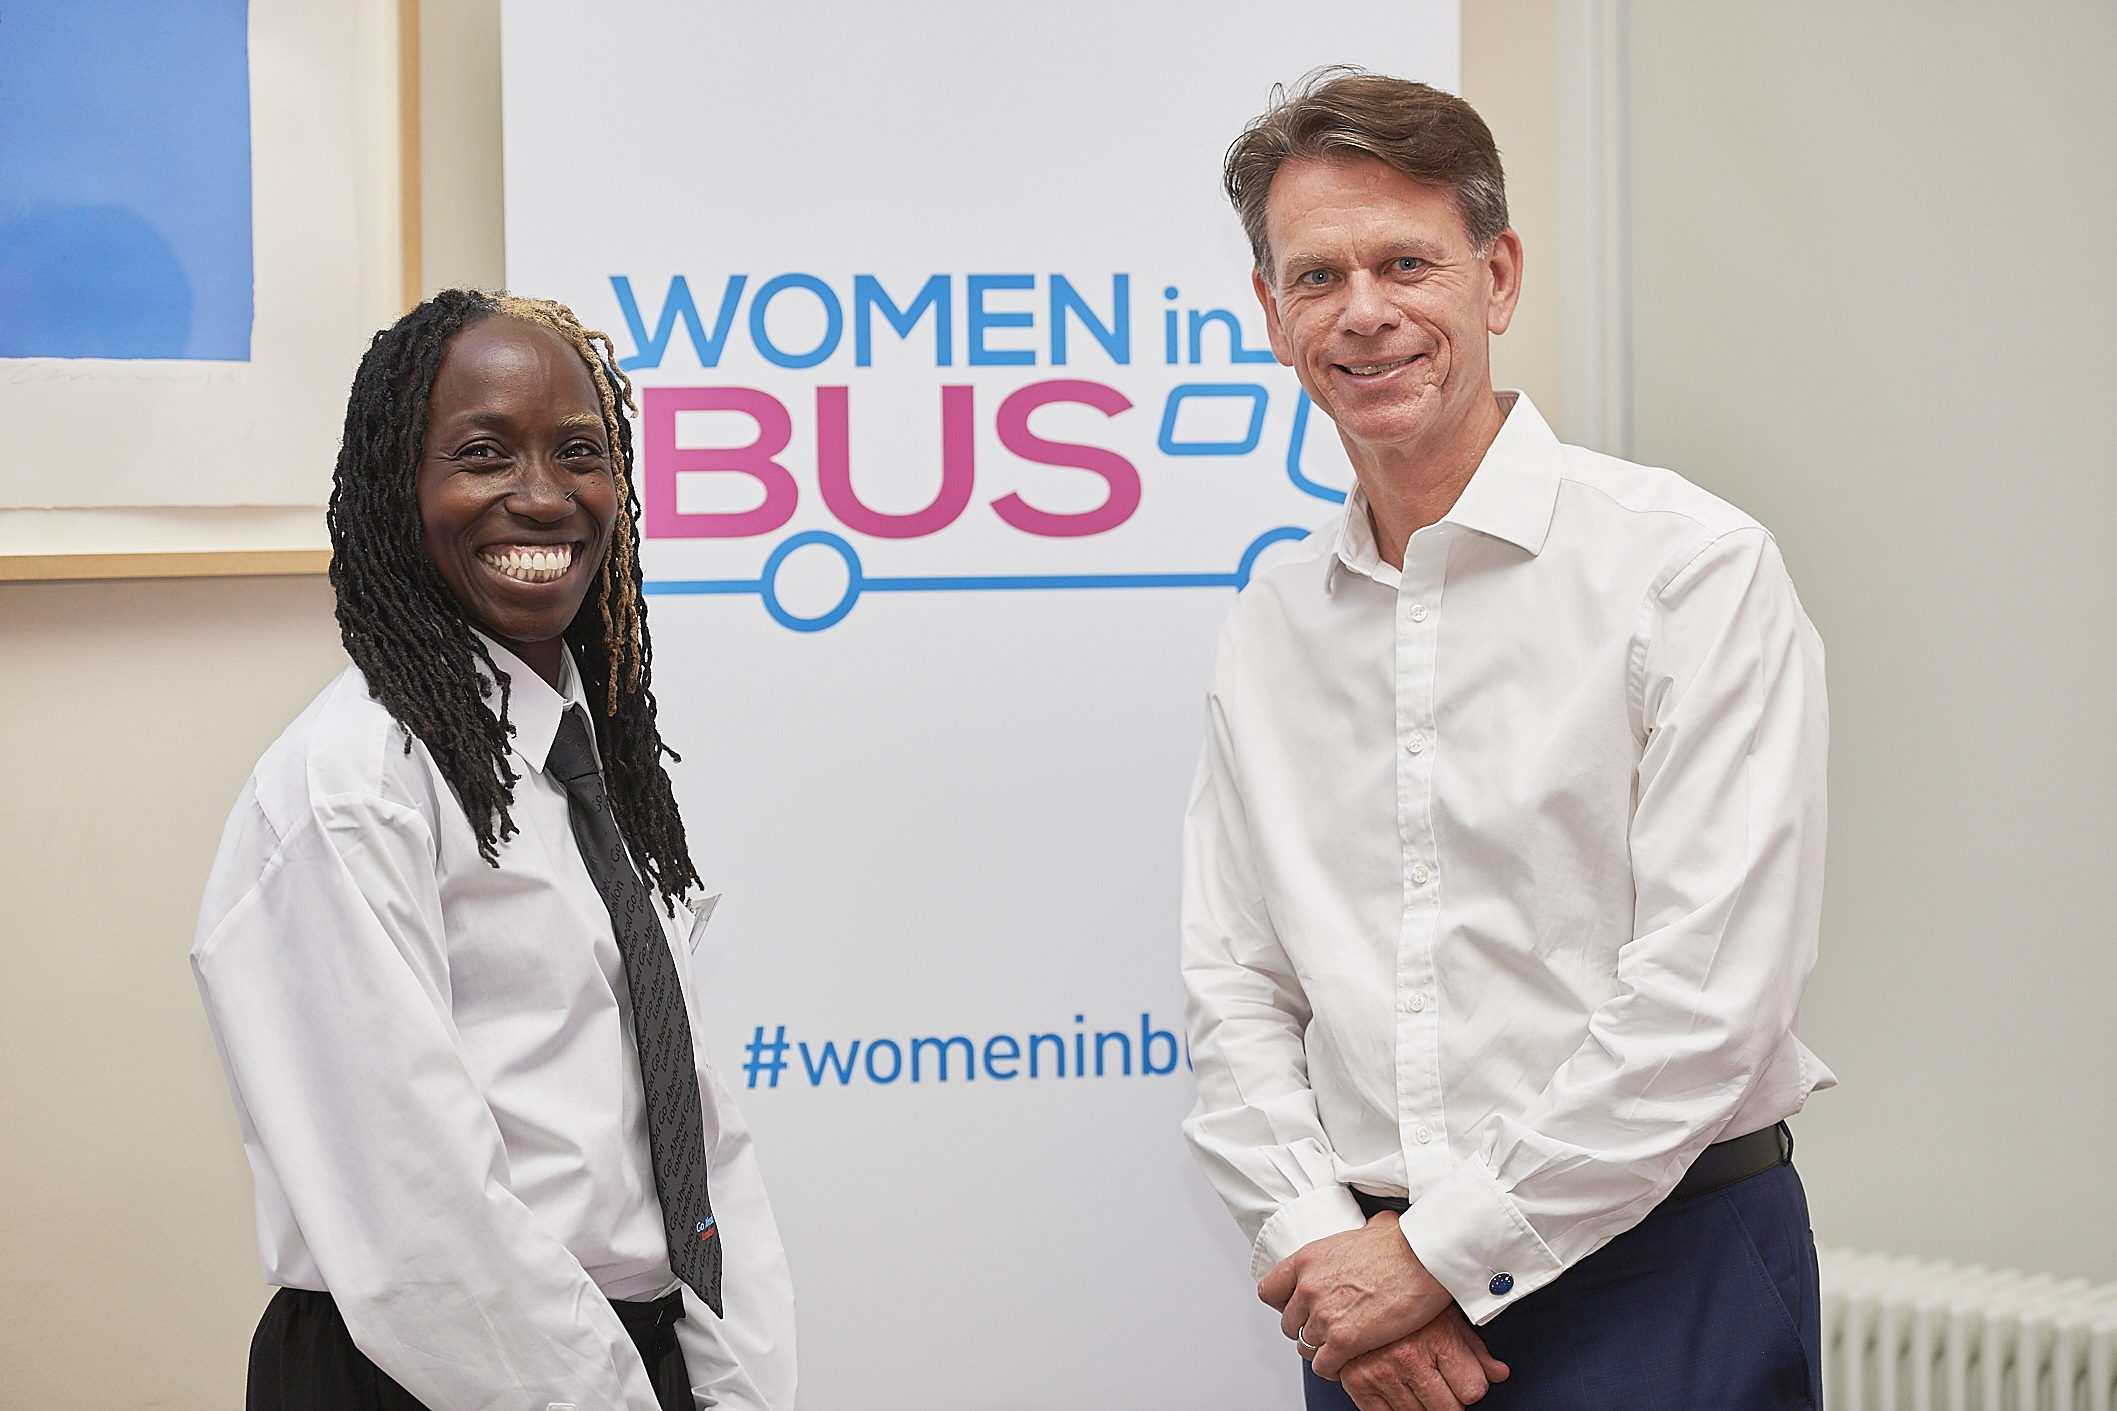 women in bus initiative go-ahead